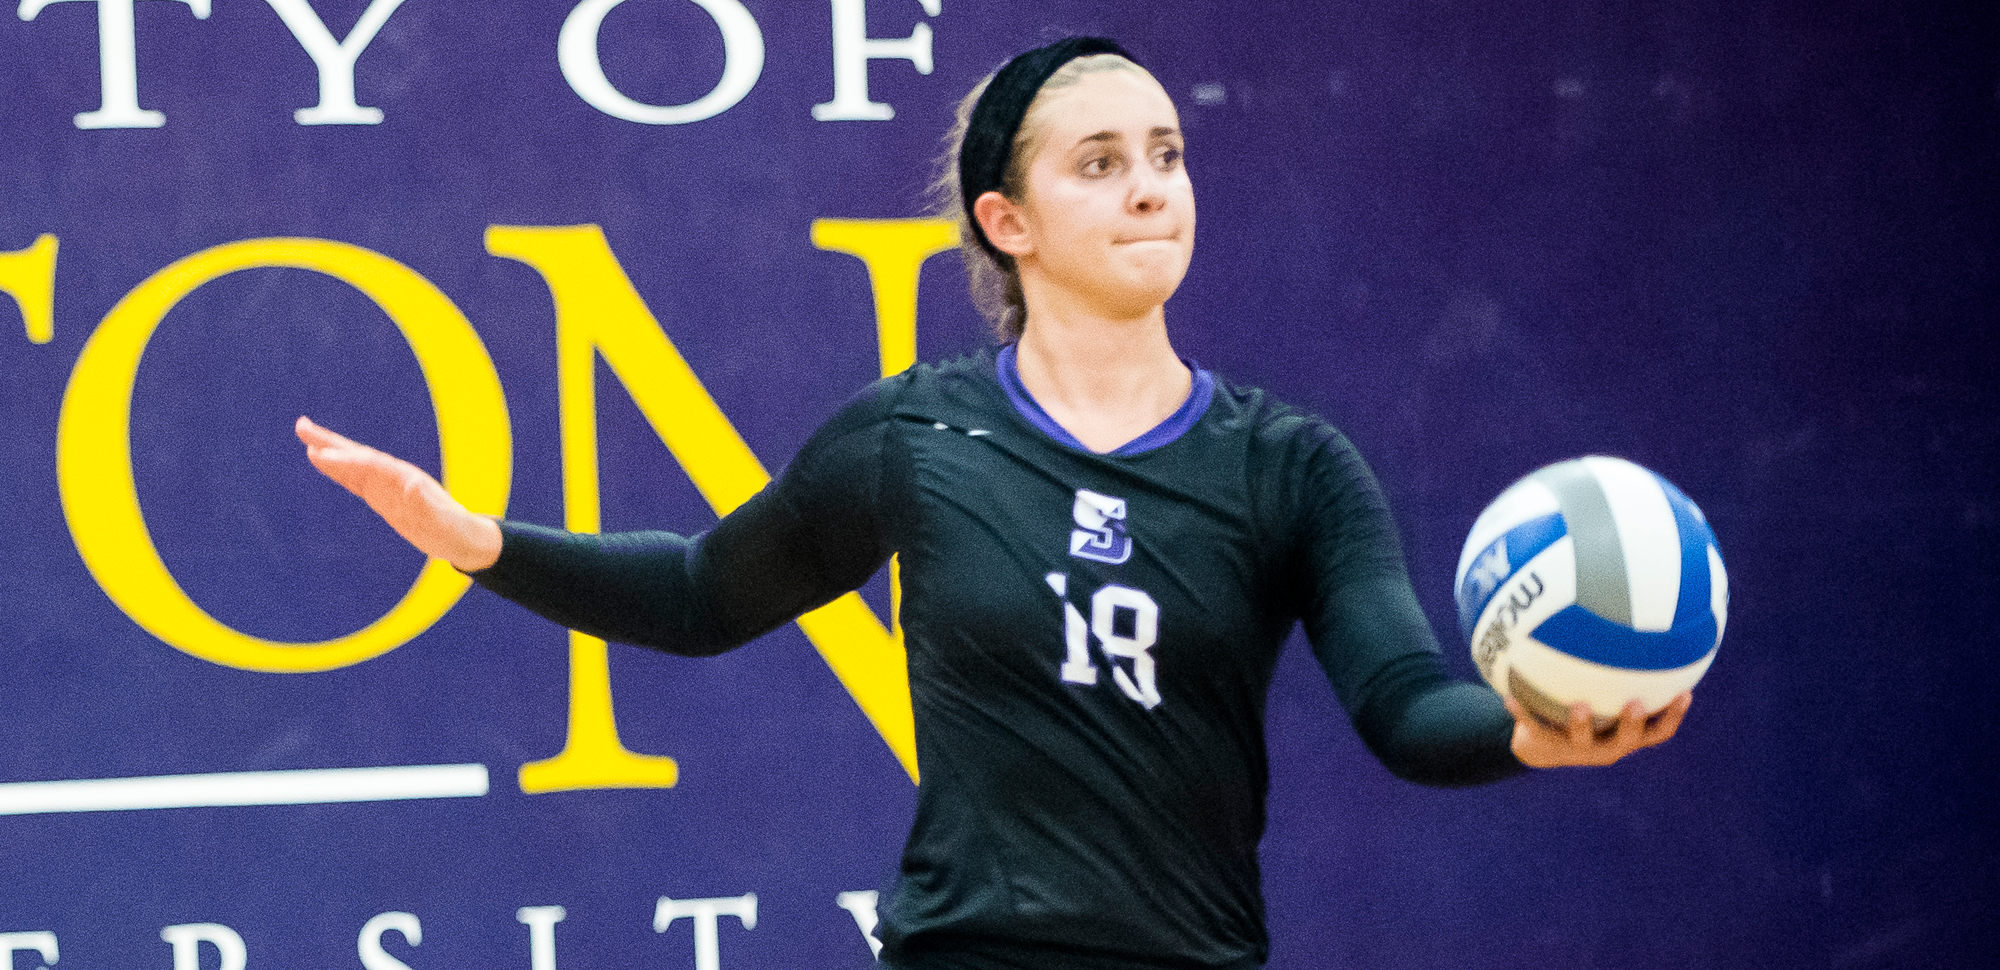 Junior Morgan Rentzheimer had seven kills, 10 digs and six block assists as the Royals rallied past Penn State-Berks on Tuesday night.